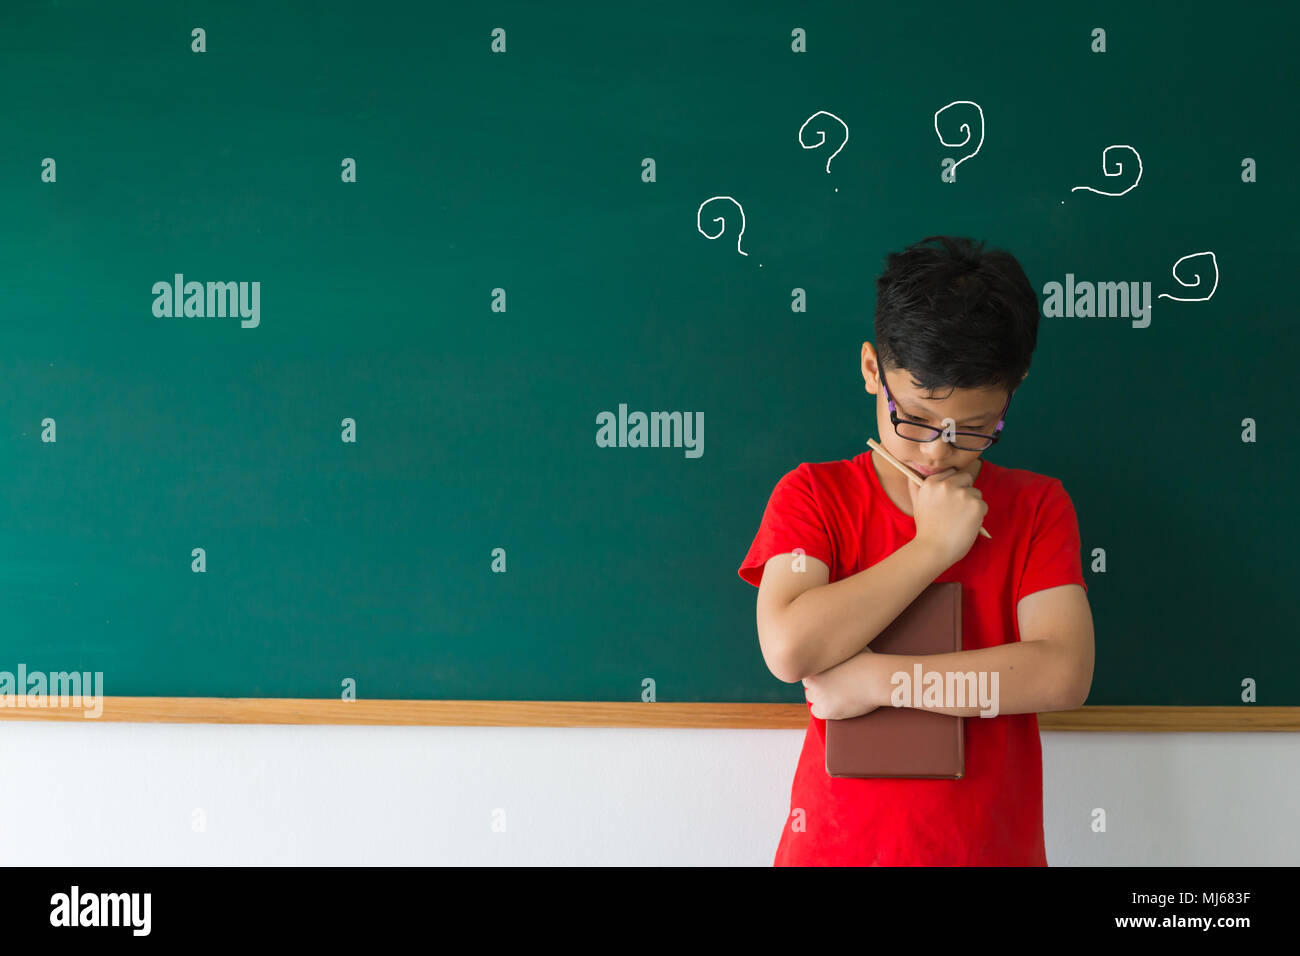 Smart boy in red t-shirt with thinking near chalkboard